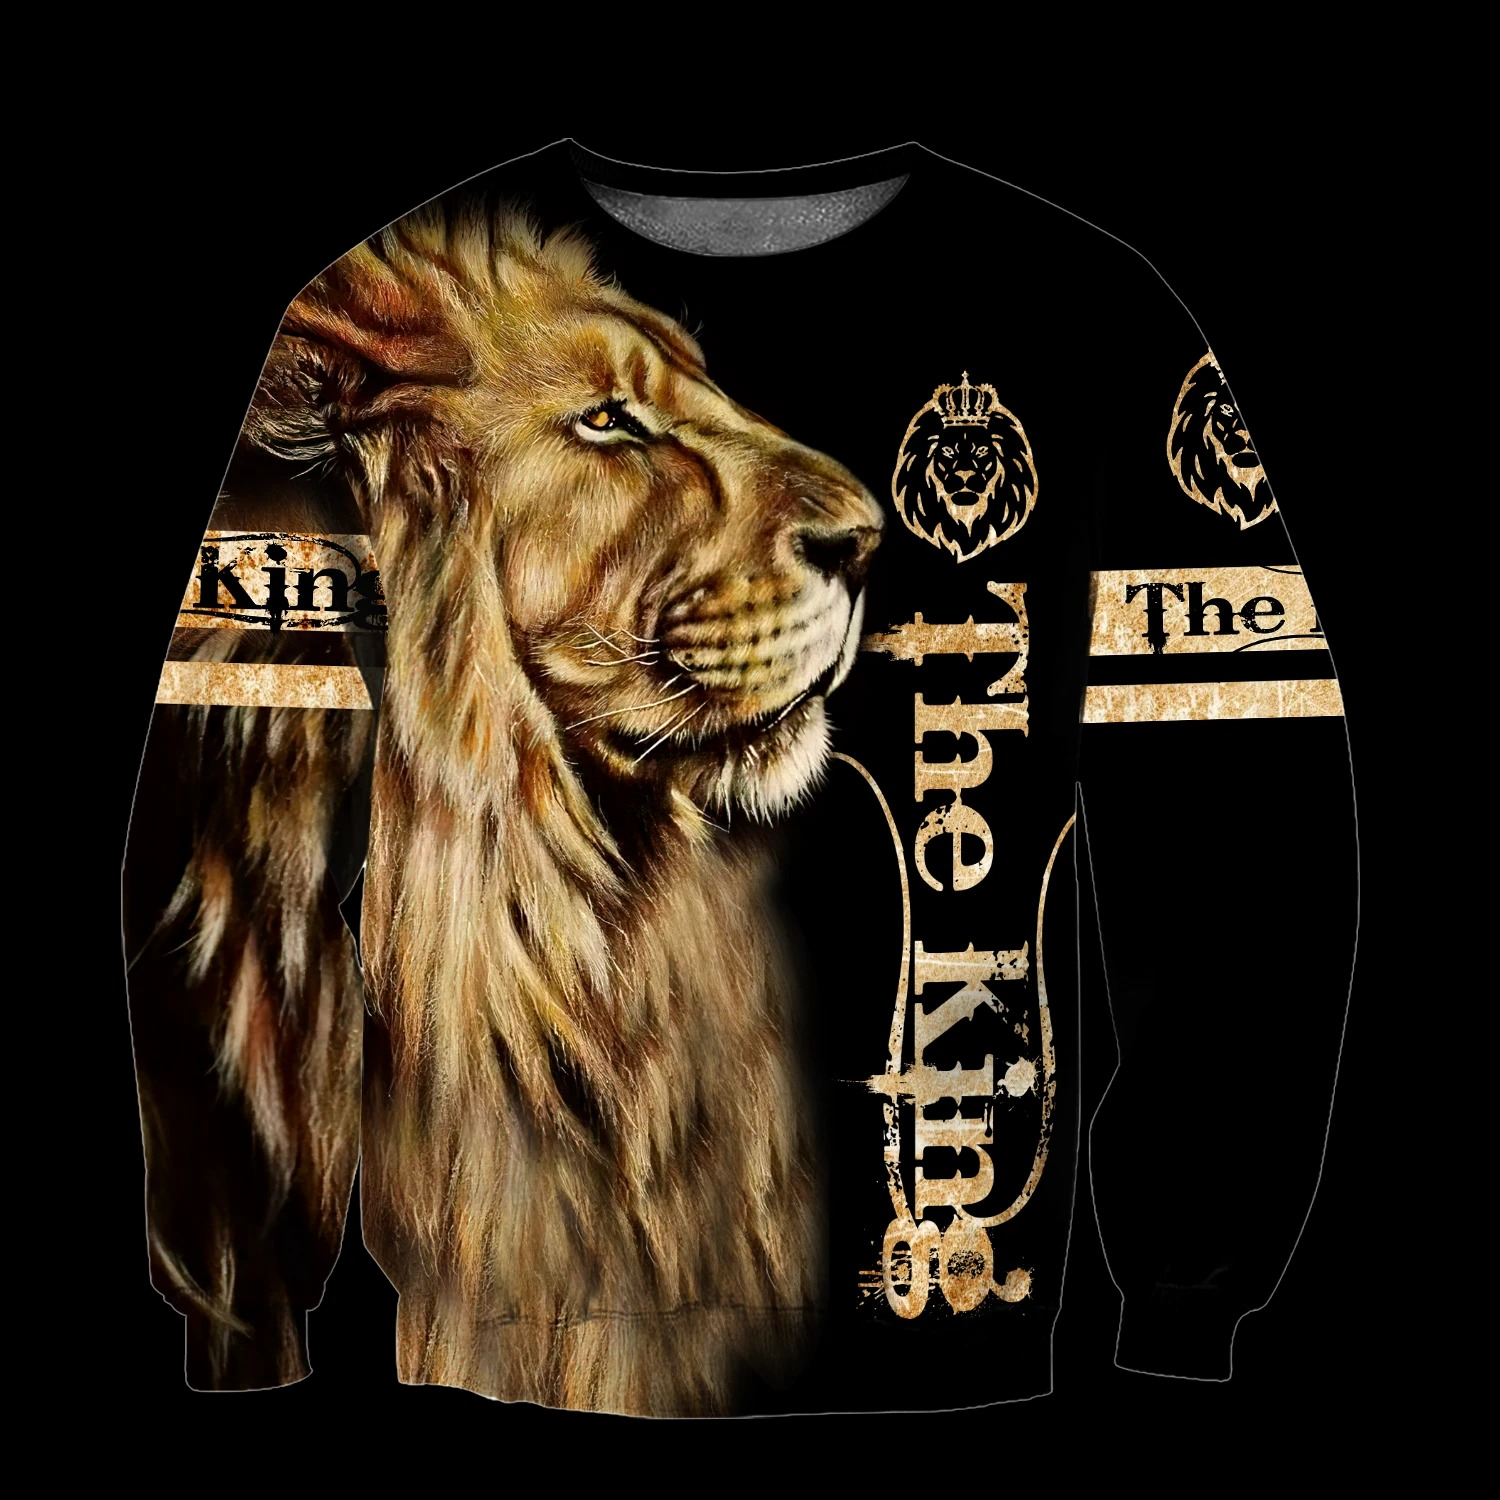 King lion 3d all over printed unisex hoodie and shirt 2